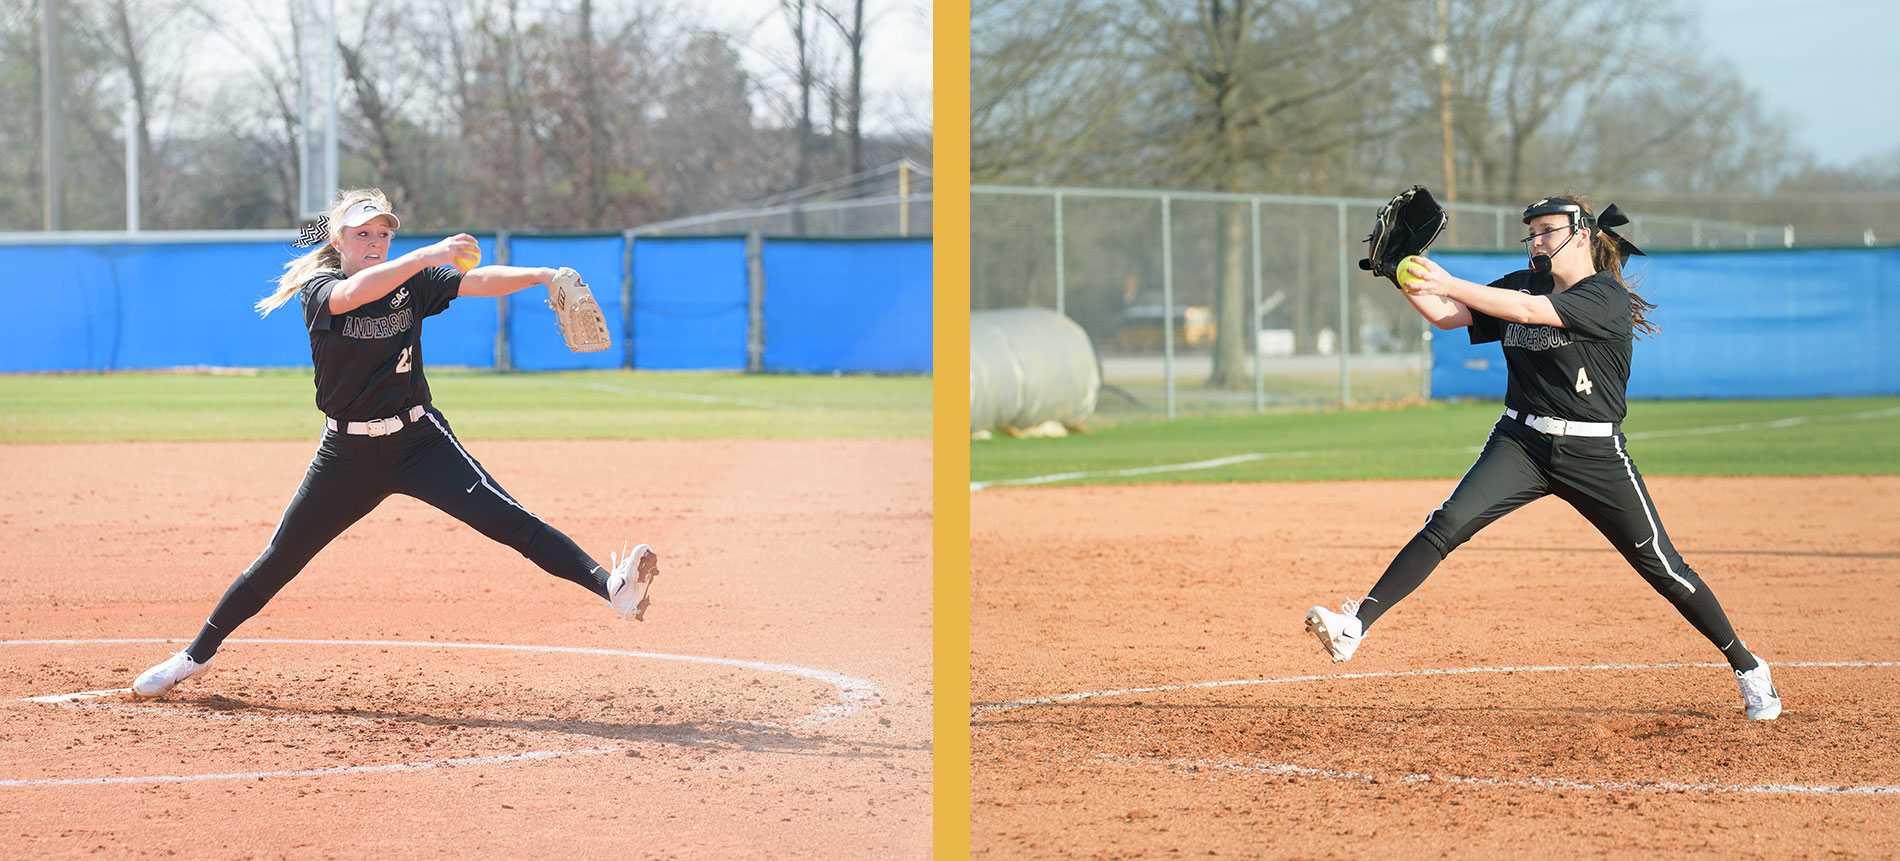 Trojans Open South Atlantic Conference Play with Doubleheader Sweep over Coker